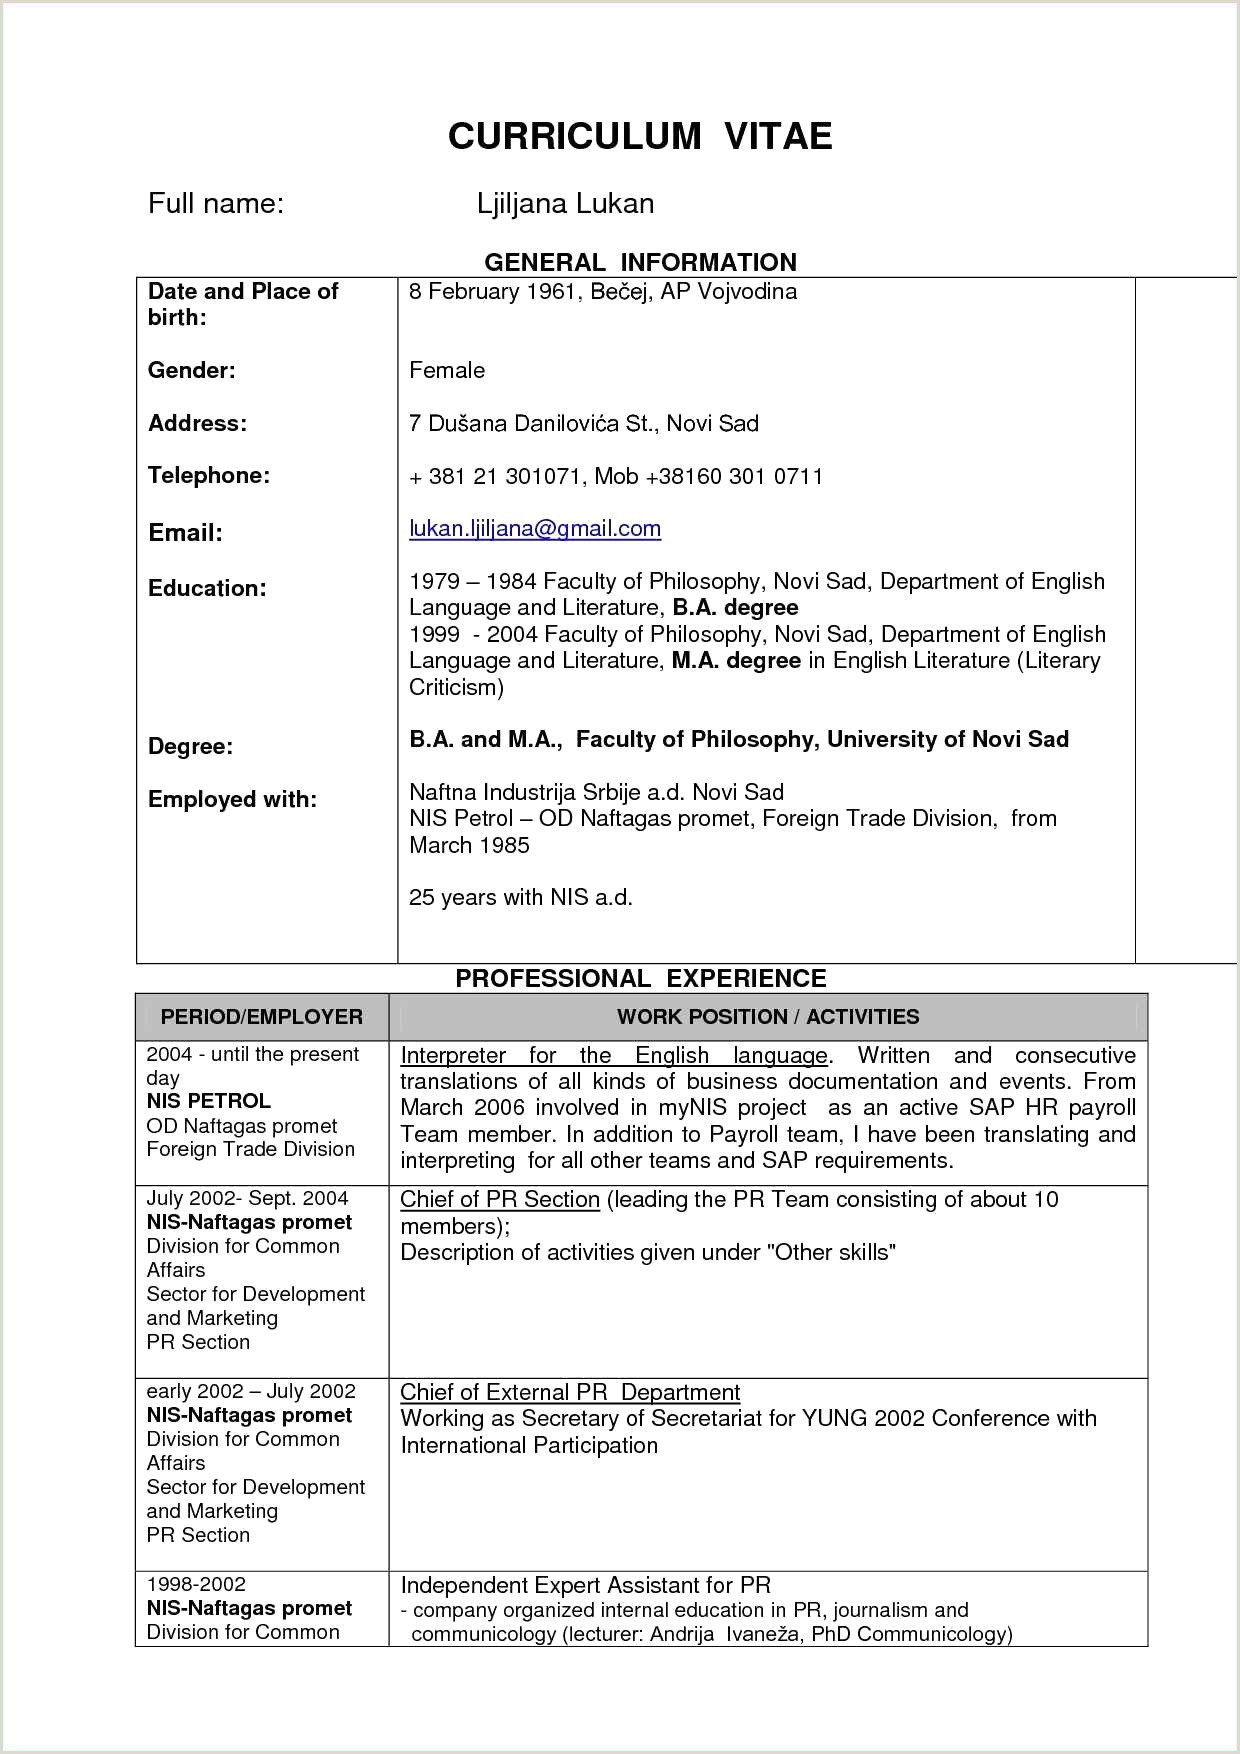 Freshers Resume format Download In Ms Word with Photo Simple Resume format for Freshers Free 13 Resume Sample for